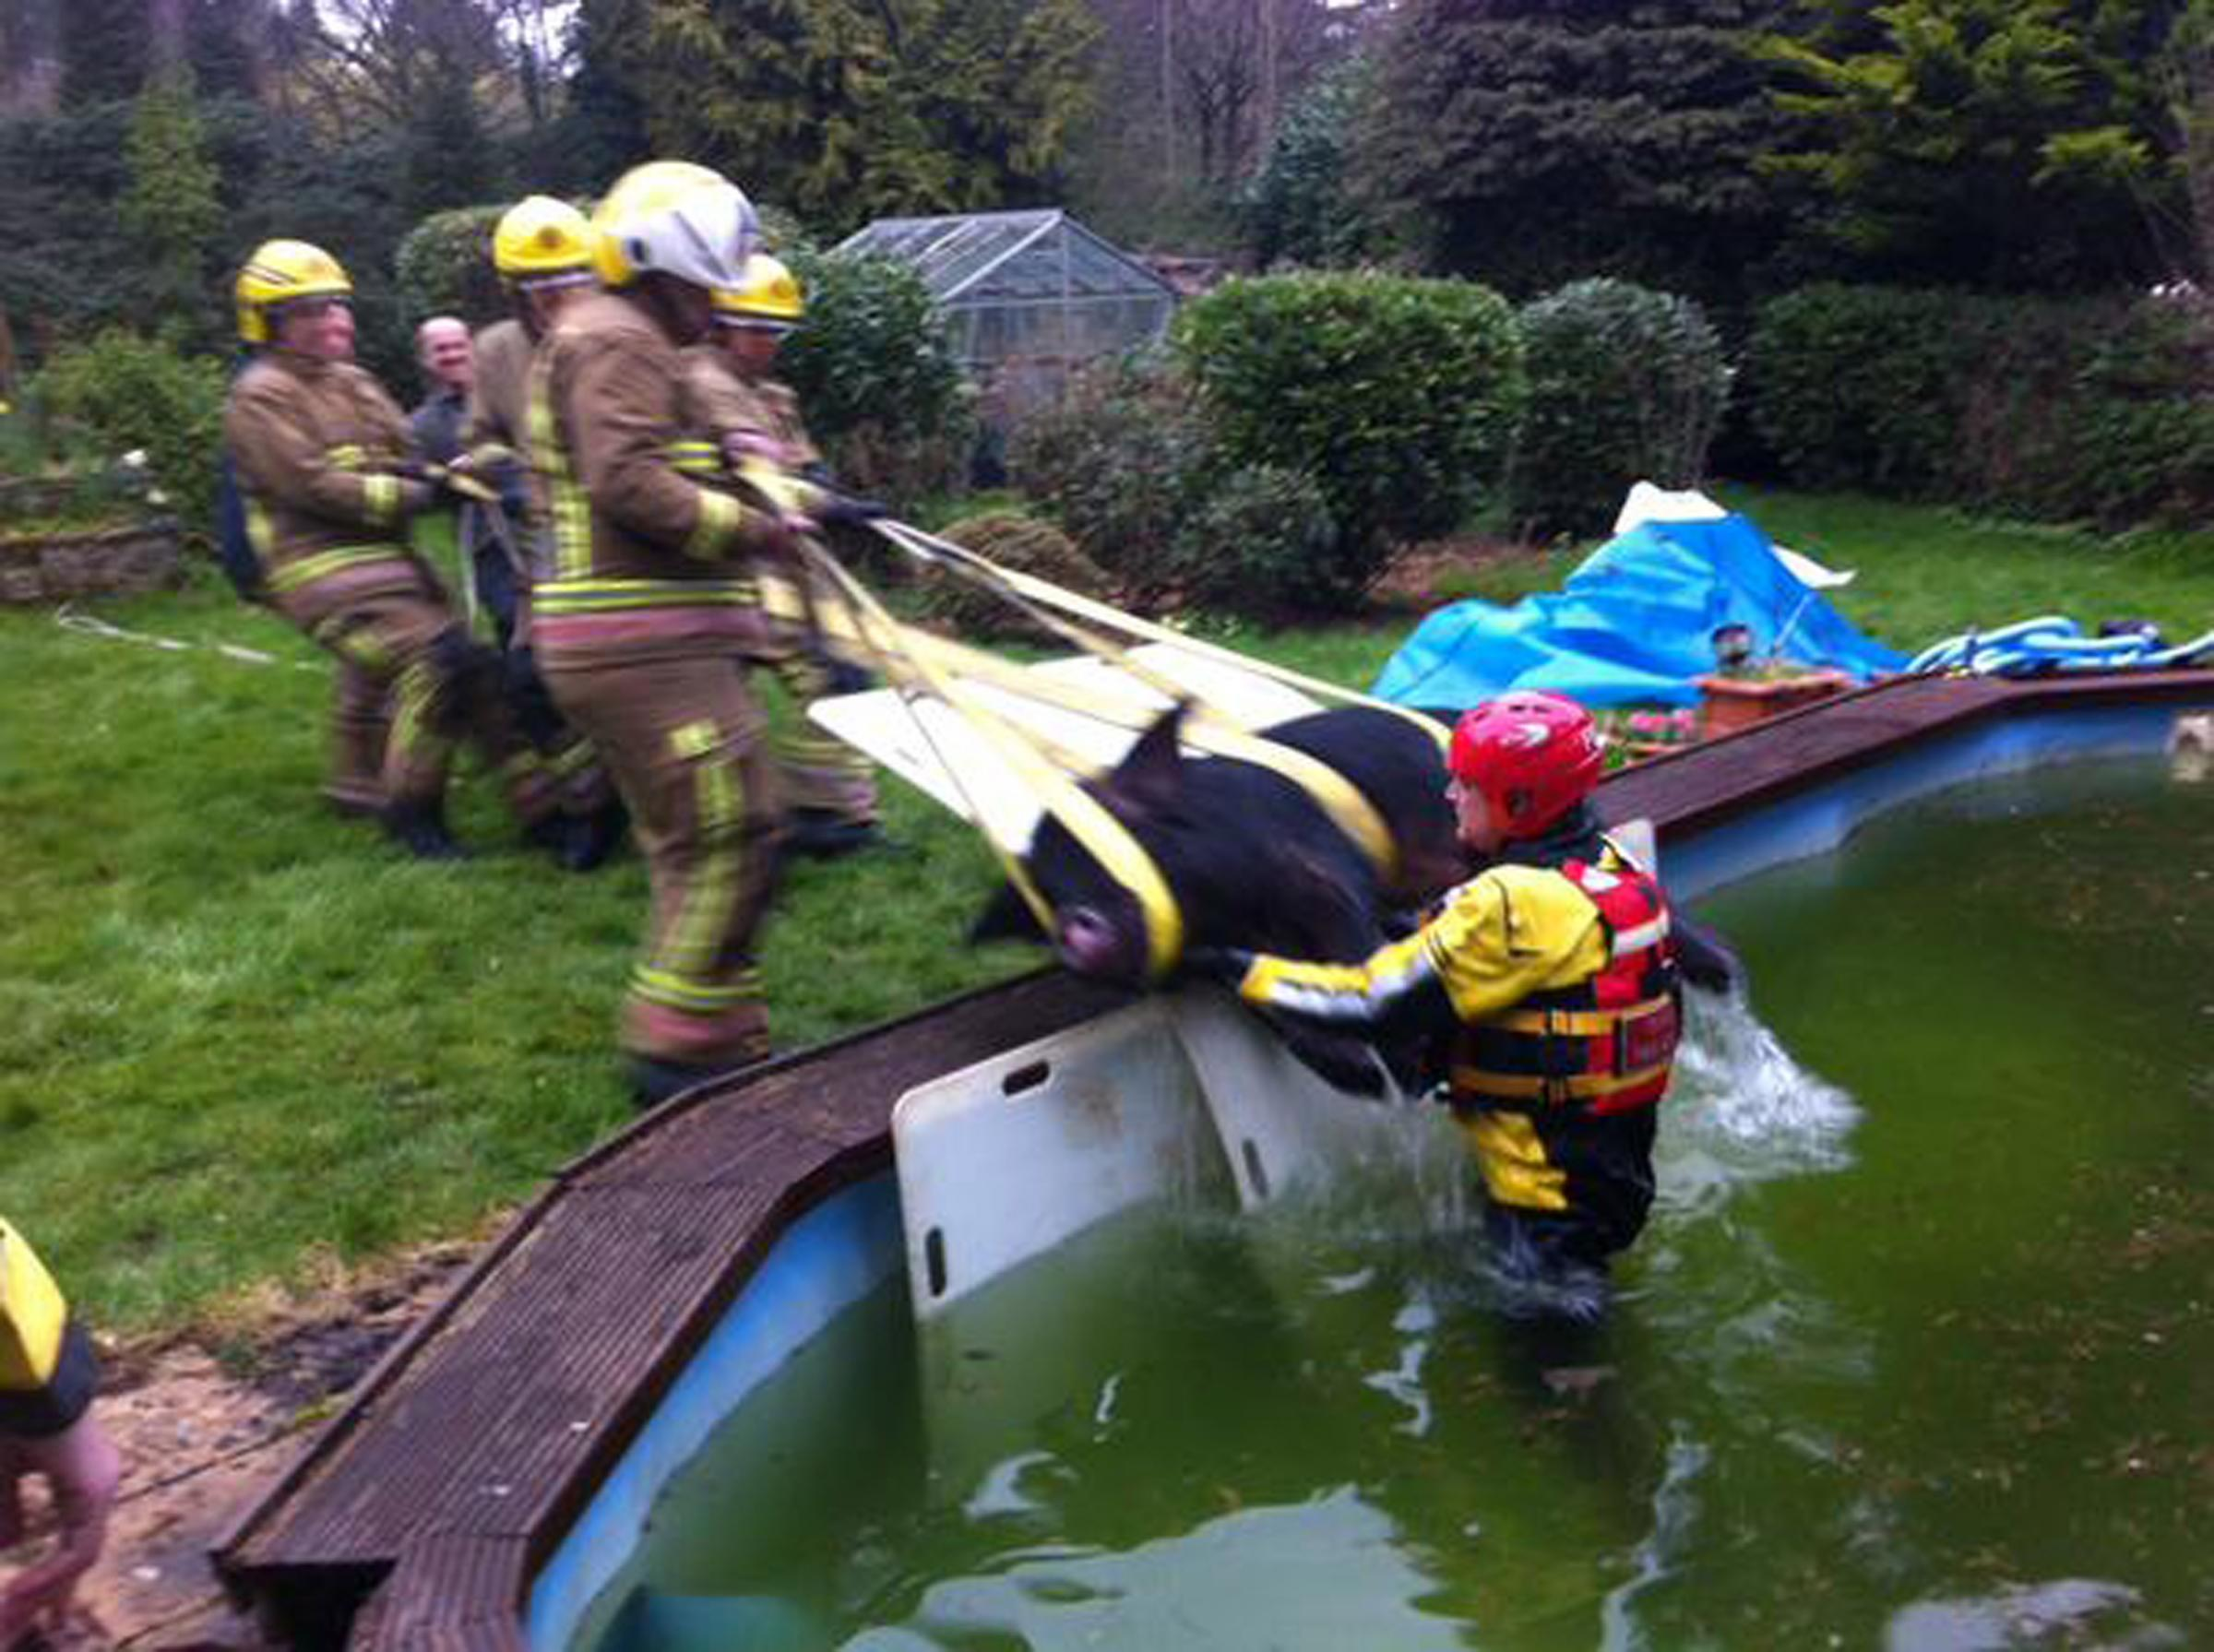 Undated handout photo taken from the Twitter feed of @andyjamescole DC East Dorset FRS of firefighters rescuing a pig from a swimming pool at a house in Hampshire. PRESS ASSOCIATION Photo. Issue date: Friday April 3, 2015. Dorset Fire and Rescue Service w